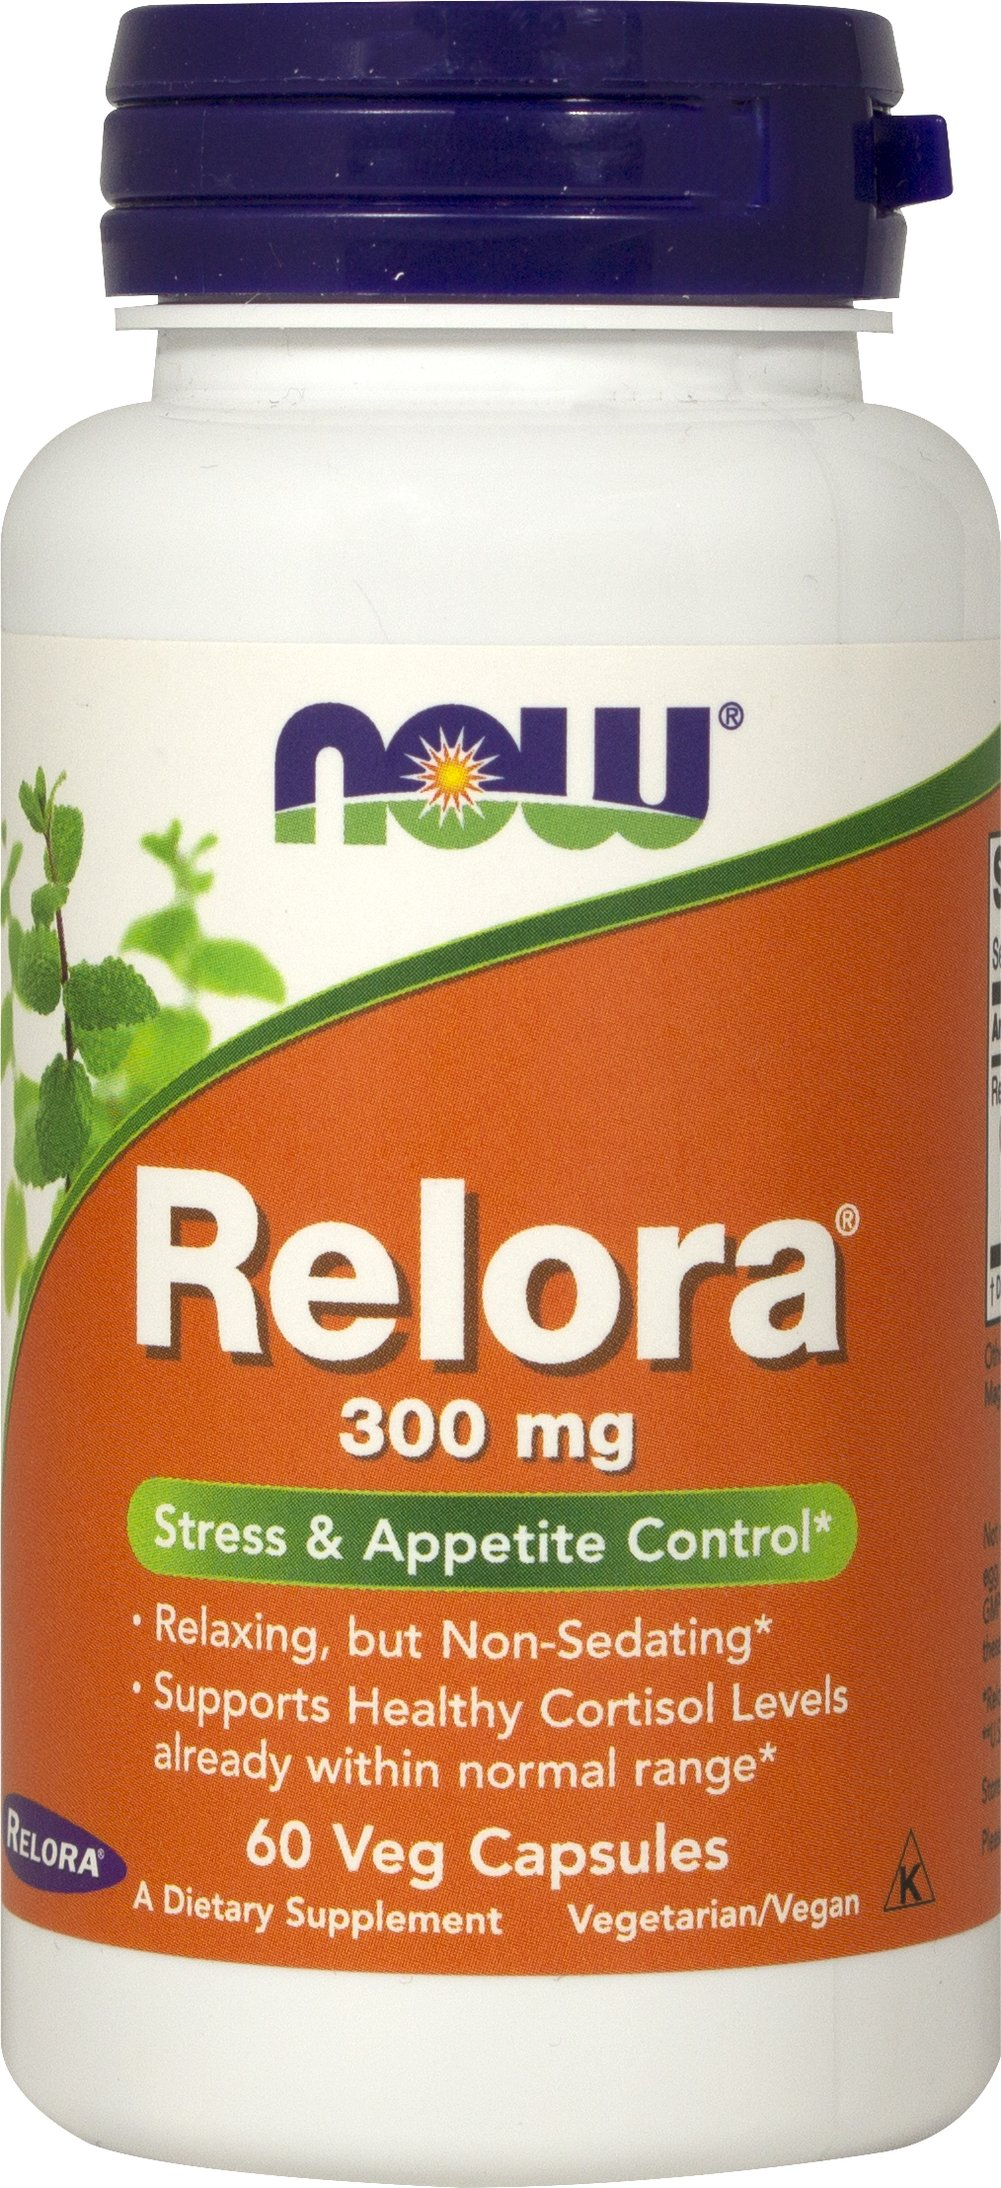 Relora <p><strong>From the Manufacturer's label:</strong></p><p>Vegetarian Formula</p><p></p>NOW®Relora® is an all-natural proprietary blend of plant extracts from Magnoli officinalis and Phellodendron amurense that is not habit-forming.**<p></p><p>Manufactured by NOW FOODS</p> 60 Capsules 300 mg $11.99